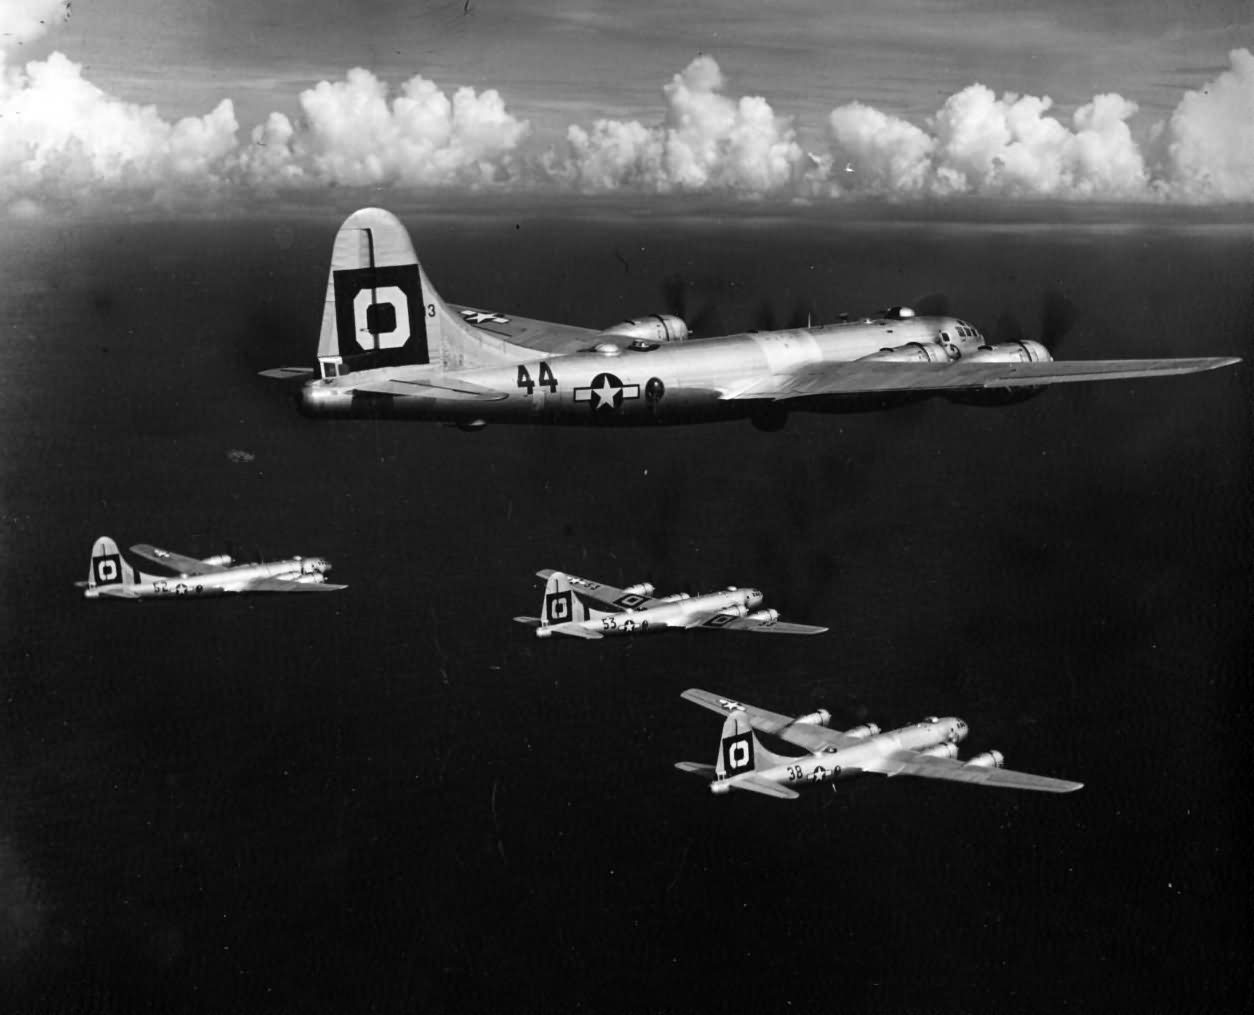 B-29 Superfortress from 314th Bomb Wing 29th Bomb Group in flight during World War II